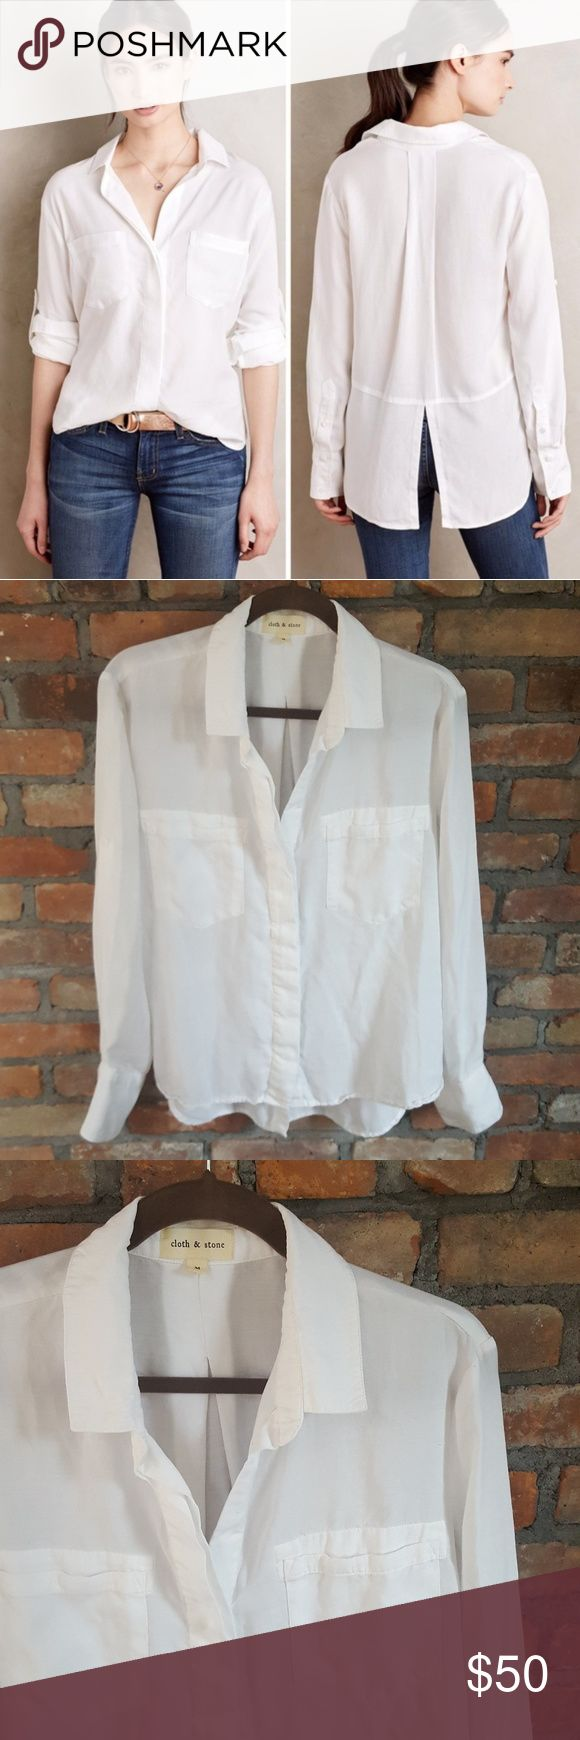 Cloth & Stone Blouse Cloth & Stone white split back tencel button down blouse.  Machine washable.  Concealed button front.  Spread collar.  Two breast pockets.  Rolled tab sleeves.  High low hem.  Excellent condition. Anthropologie Tops Button Down Shirts